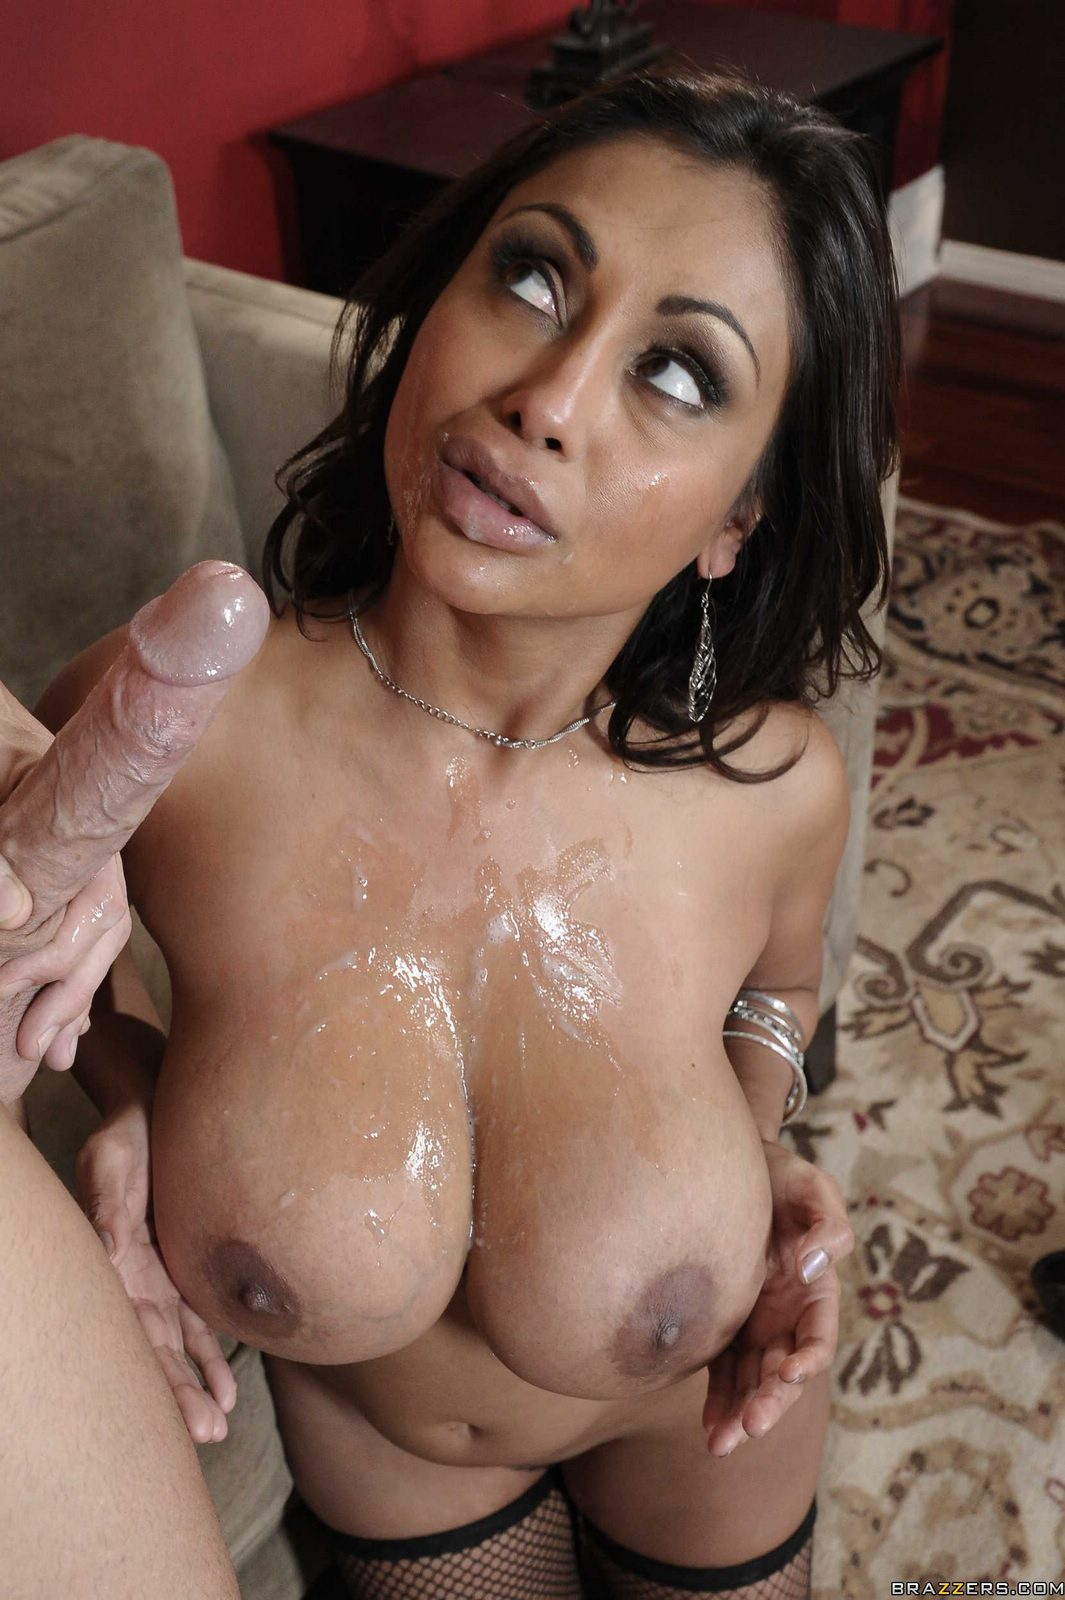 image Busty milf joslyn james titfuck and huge facial cum pov